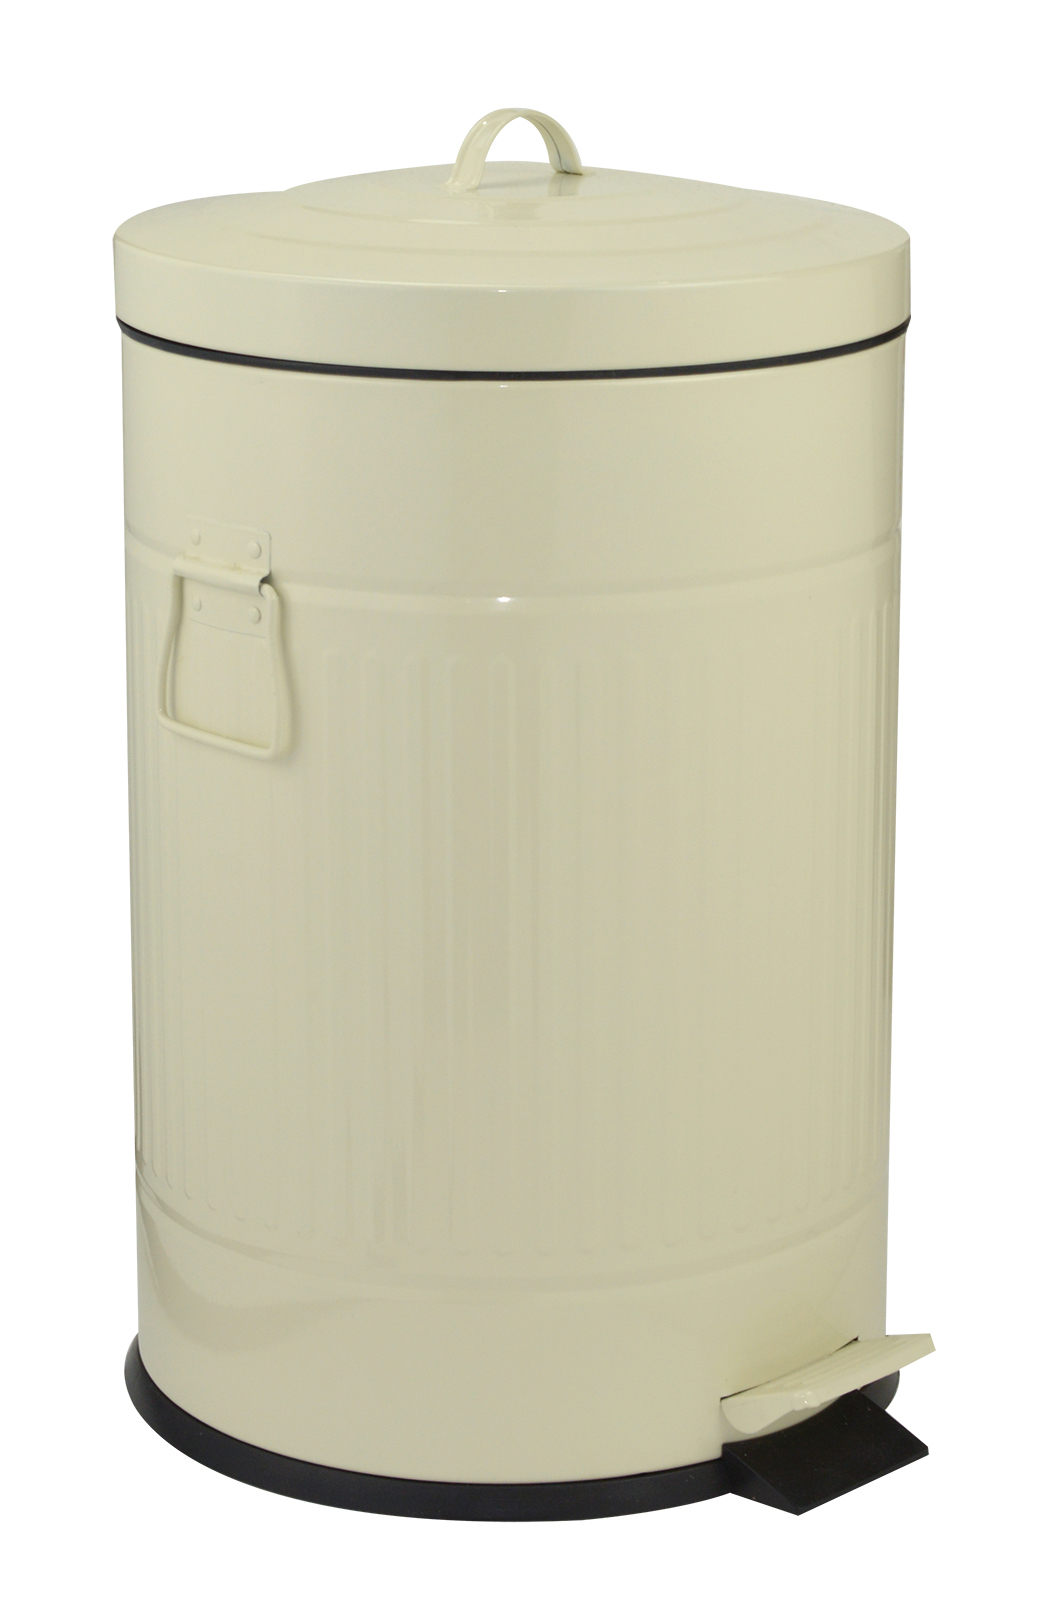 dustbin euro 20L cream side.jpg